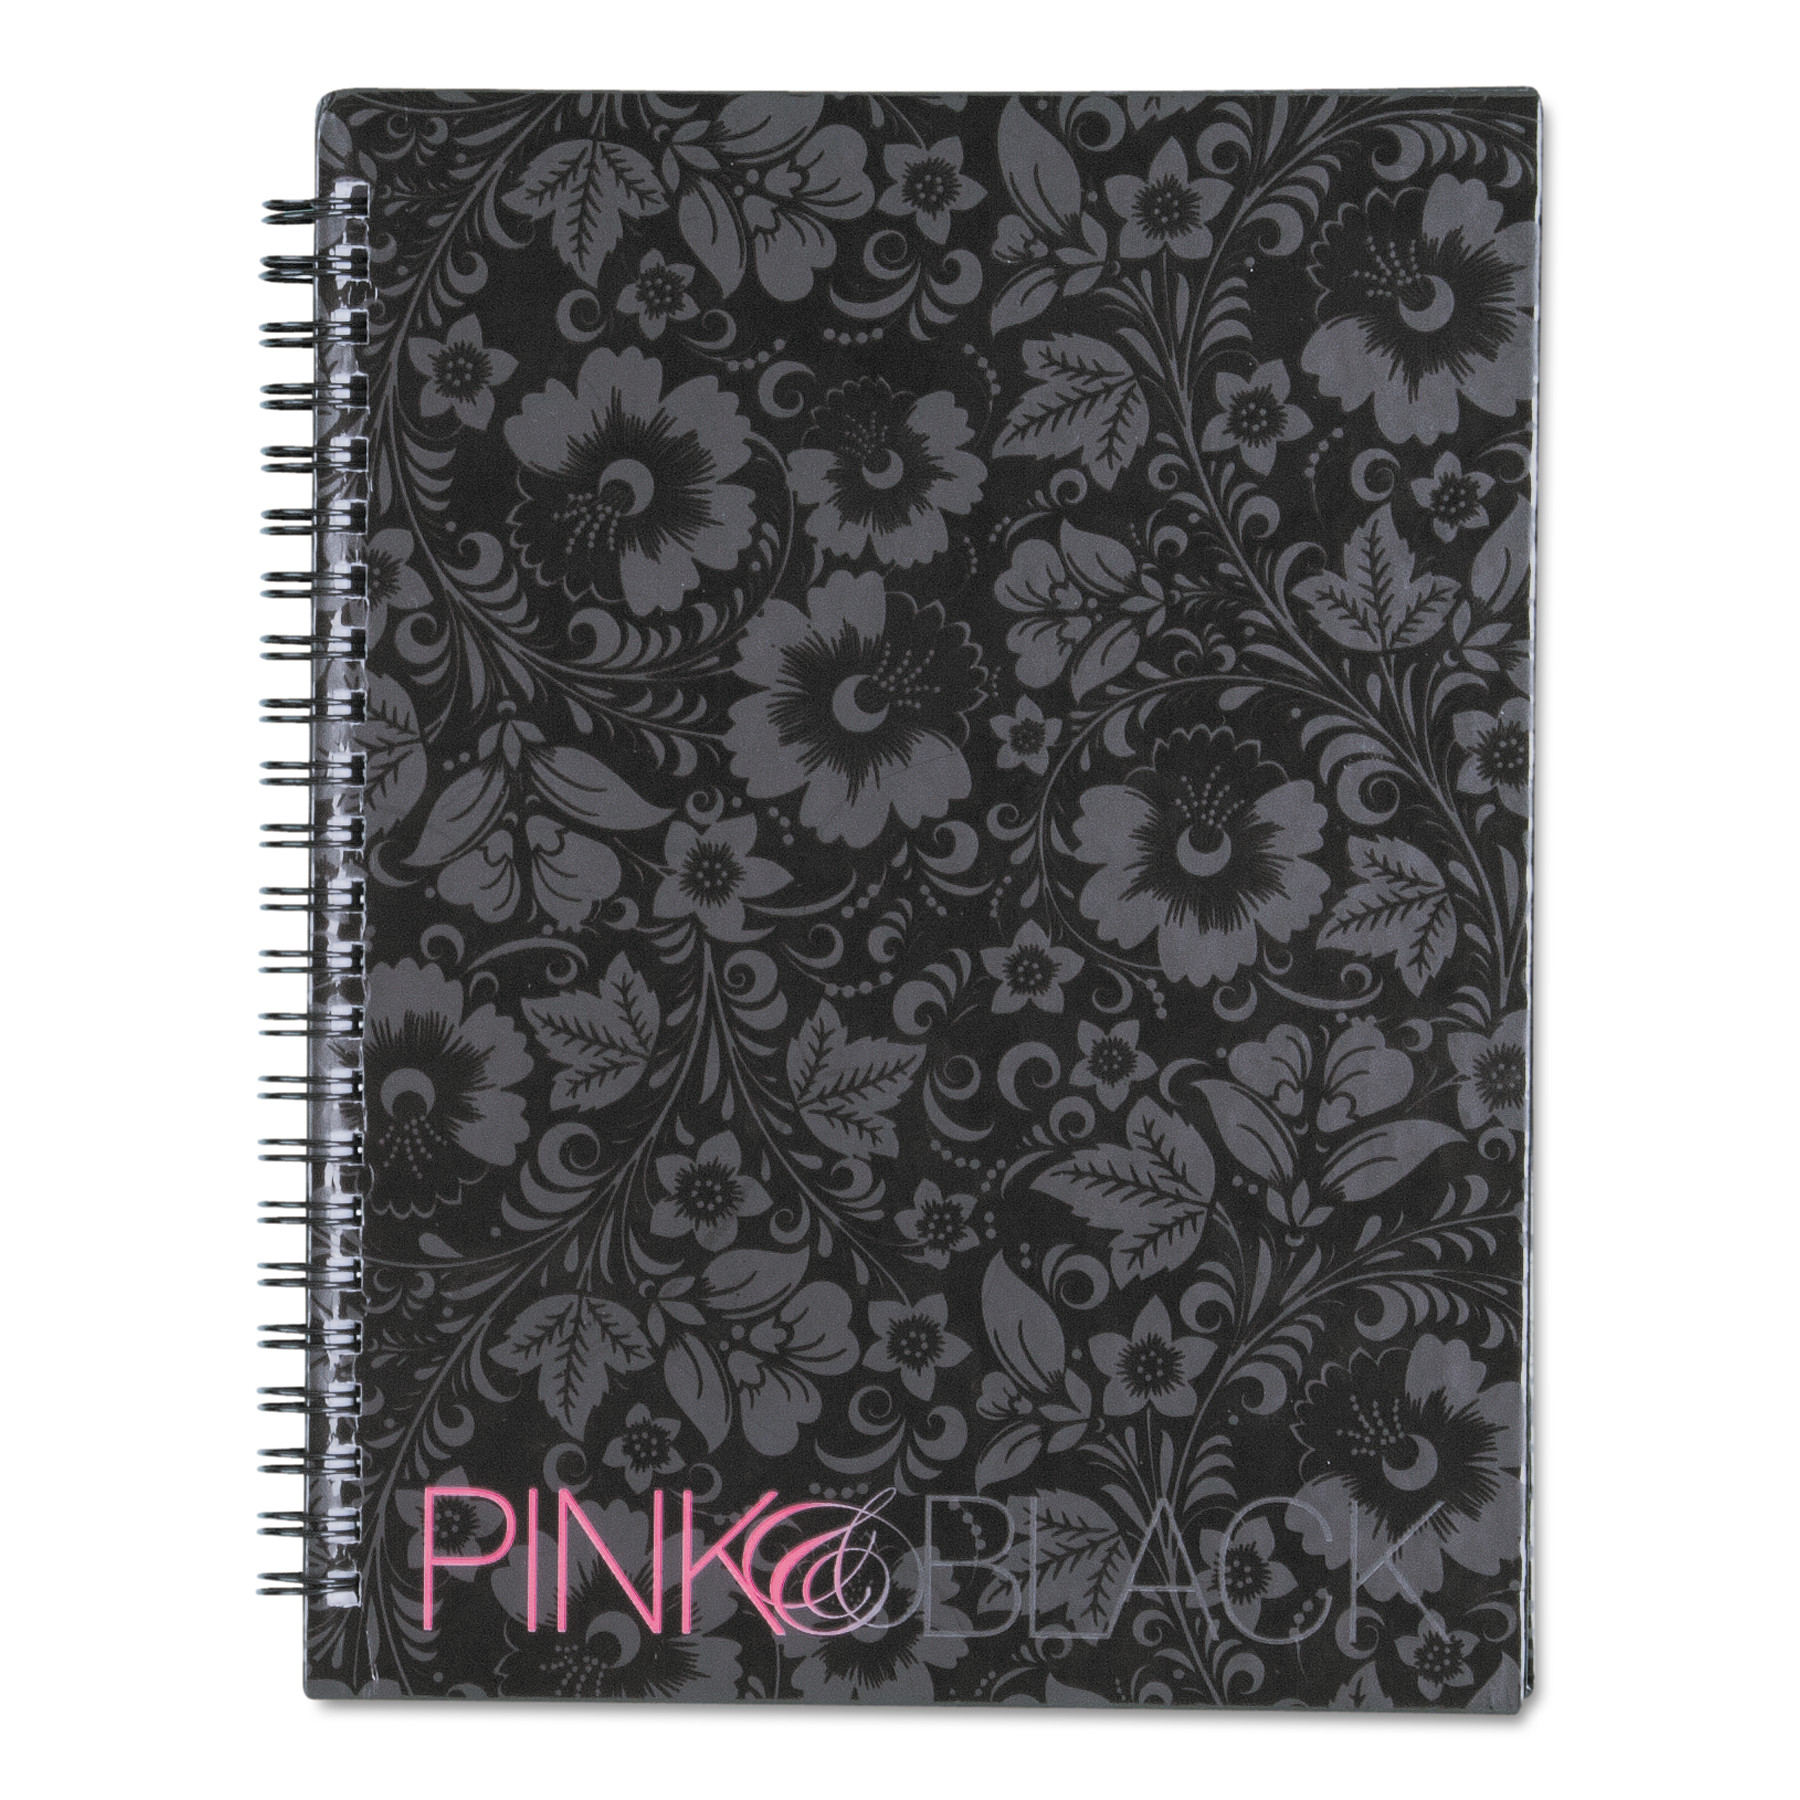 Pink & Black Pink & Black Professional Wirebound Notebook, Ruled, 8 1/4 x 6 1/4, 70 Sheets